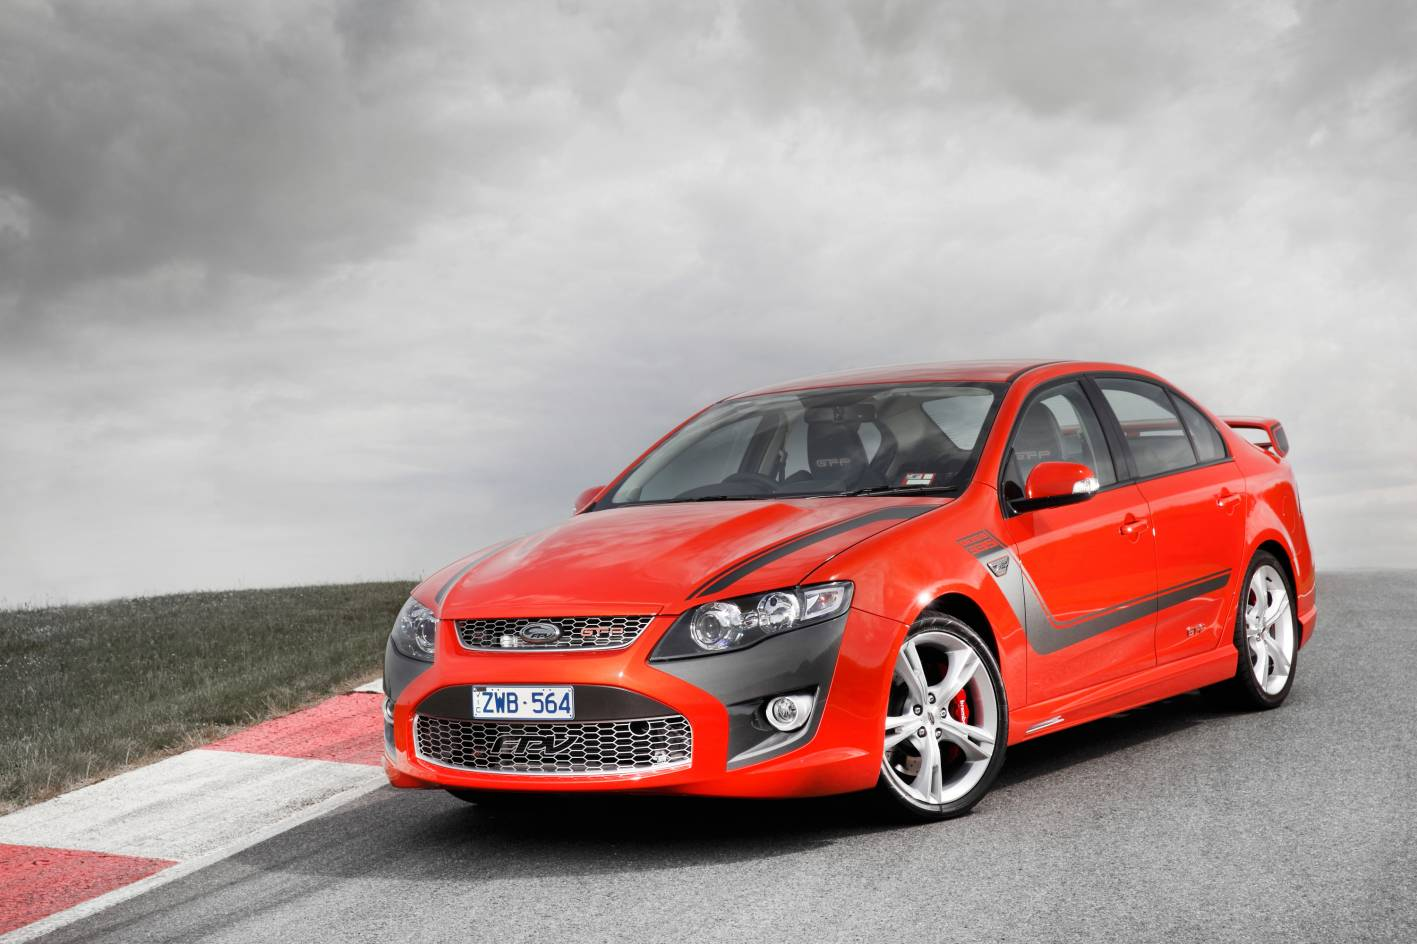 News - Limited Edition Ford FPV GT F Almost Sold Out